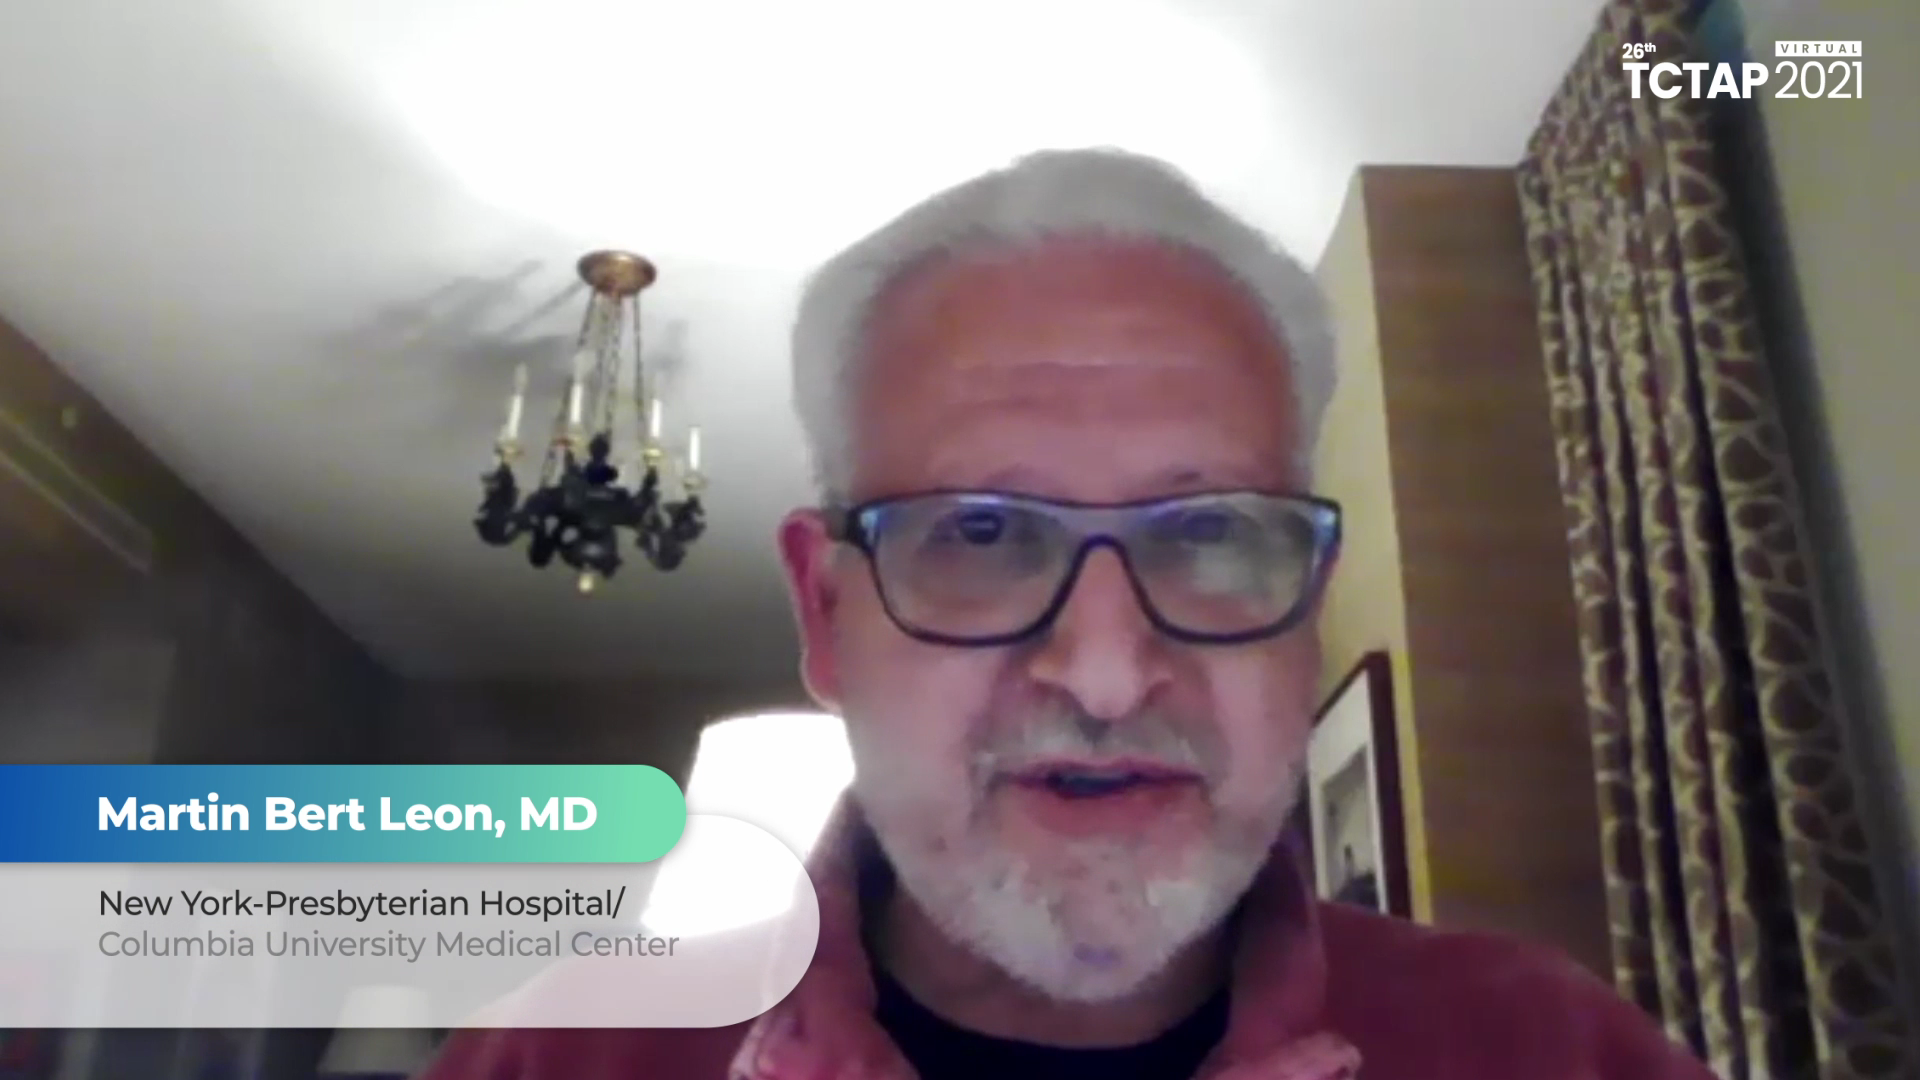 Congratulatory Message to TCTAP 2021 Virtual from Martin Bert Leon, MD